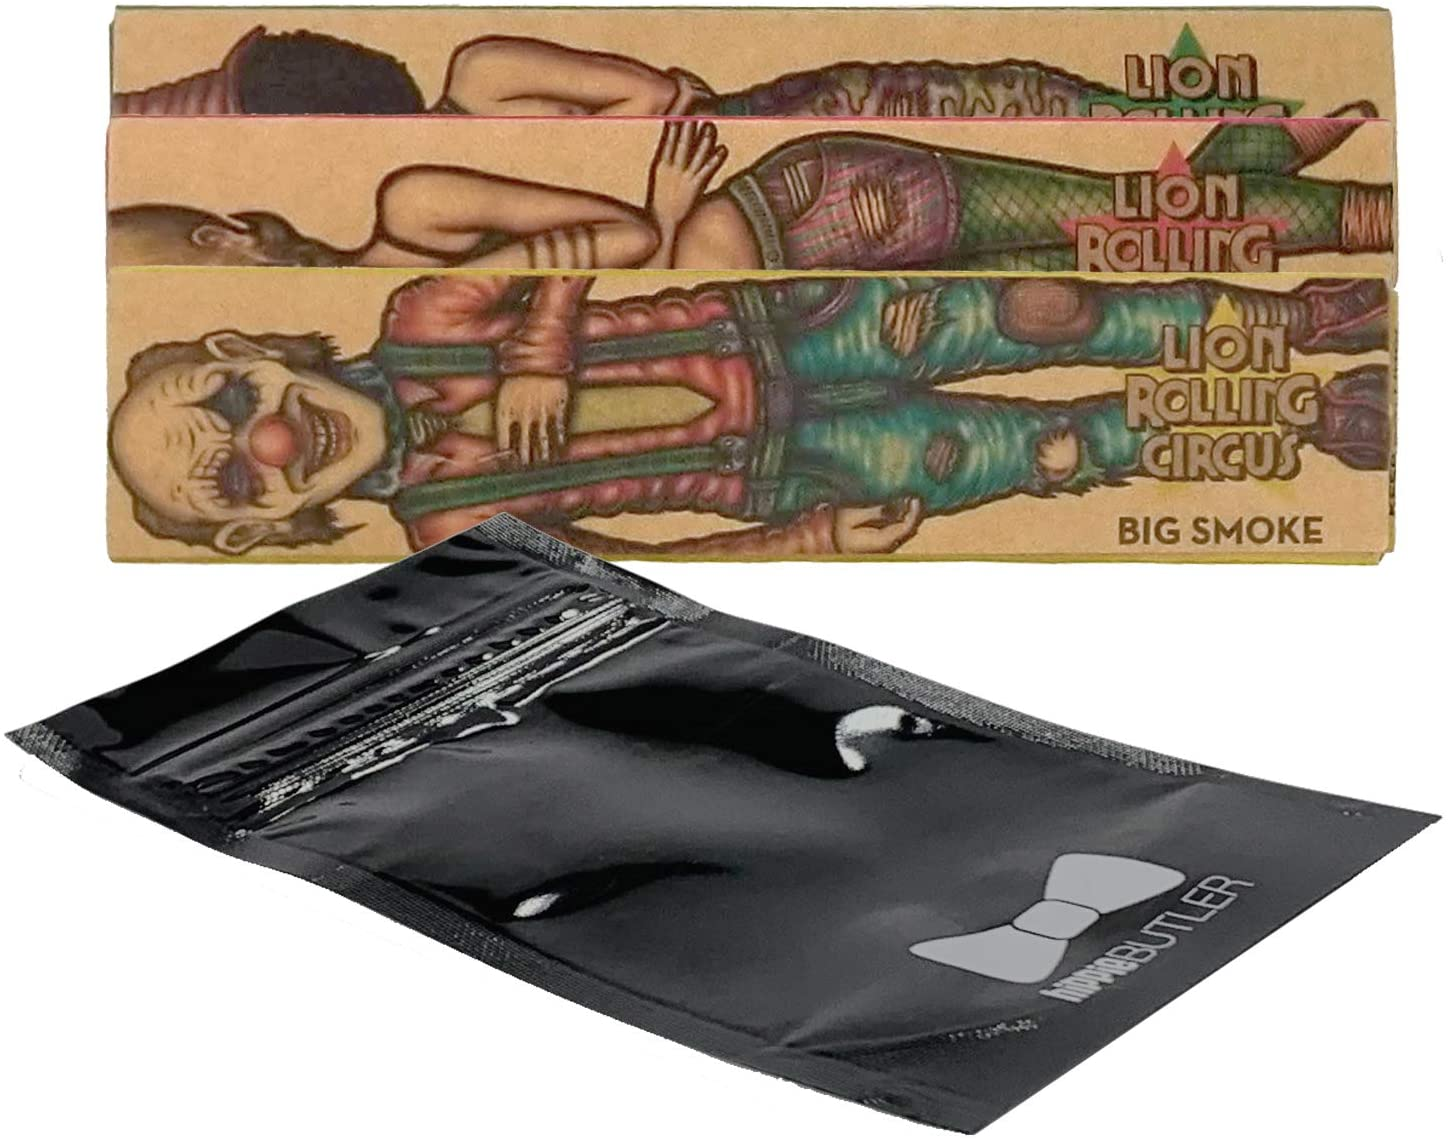 Lion Rolling Circus Unbleached King Size Rolling Paper (3 Packs) with Hippie Butler Smell Proof Pouch